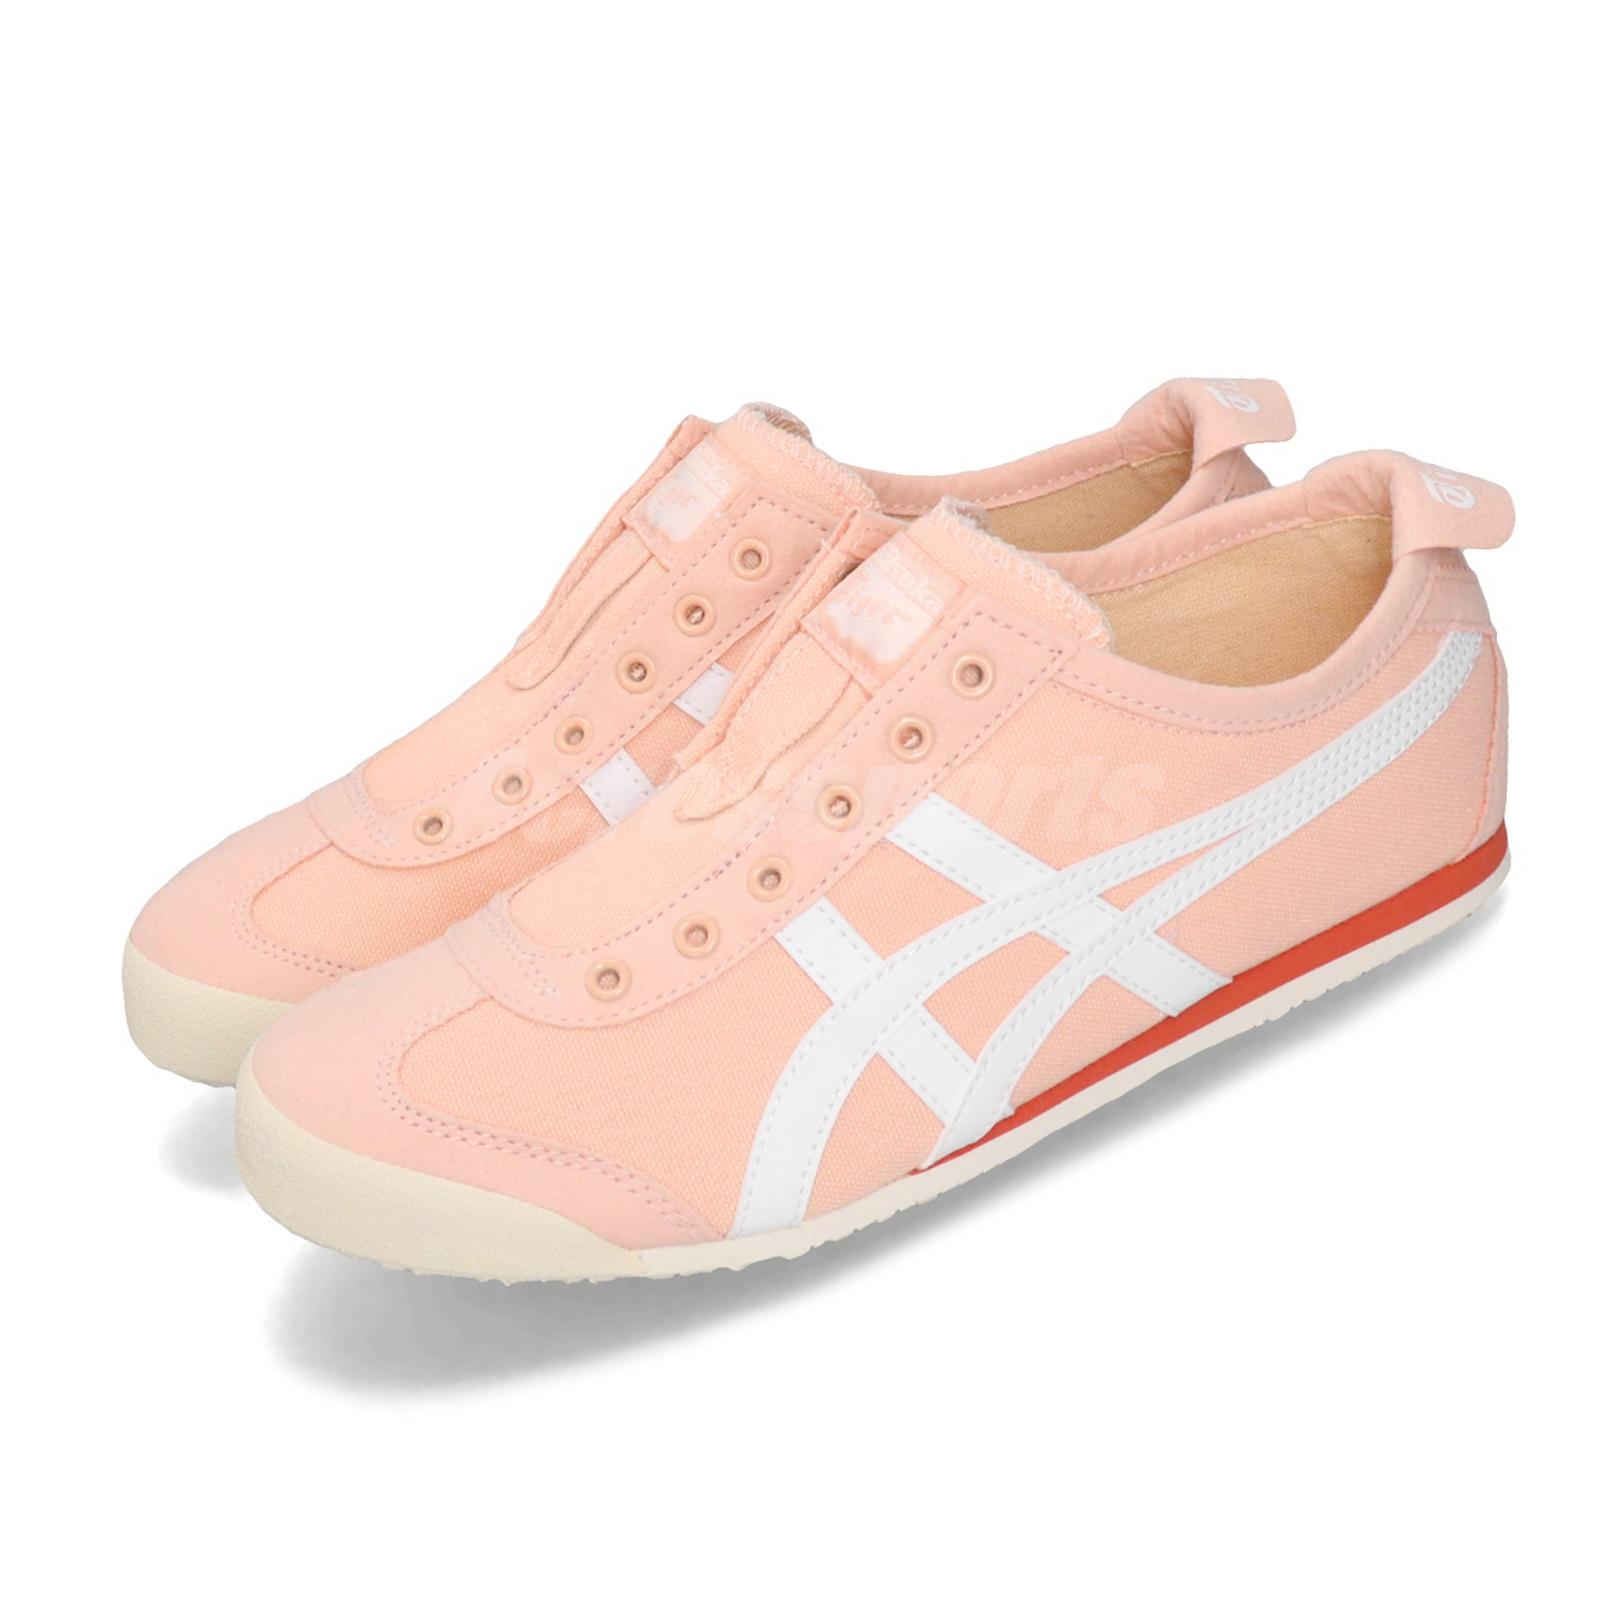 onitsuka tiger mexico 66 grey white gum pink